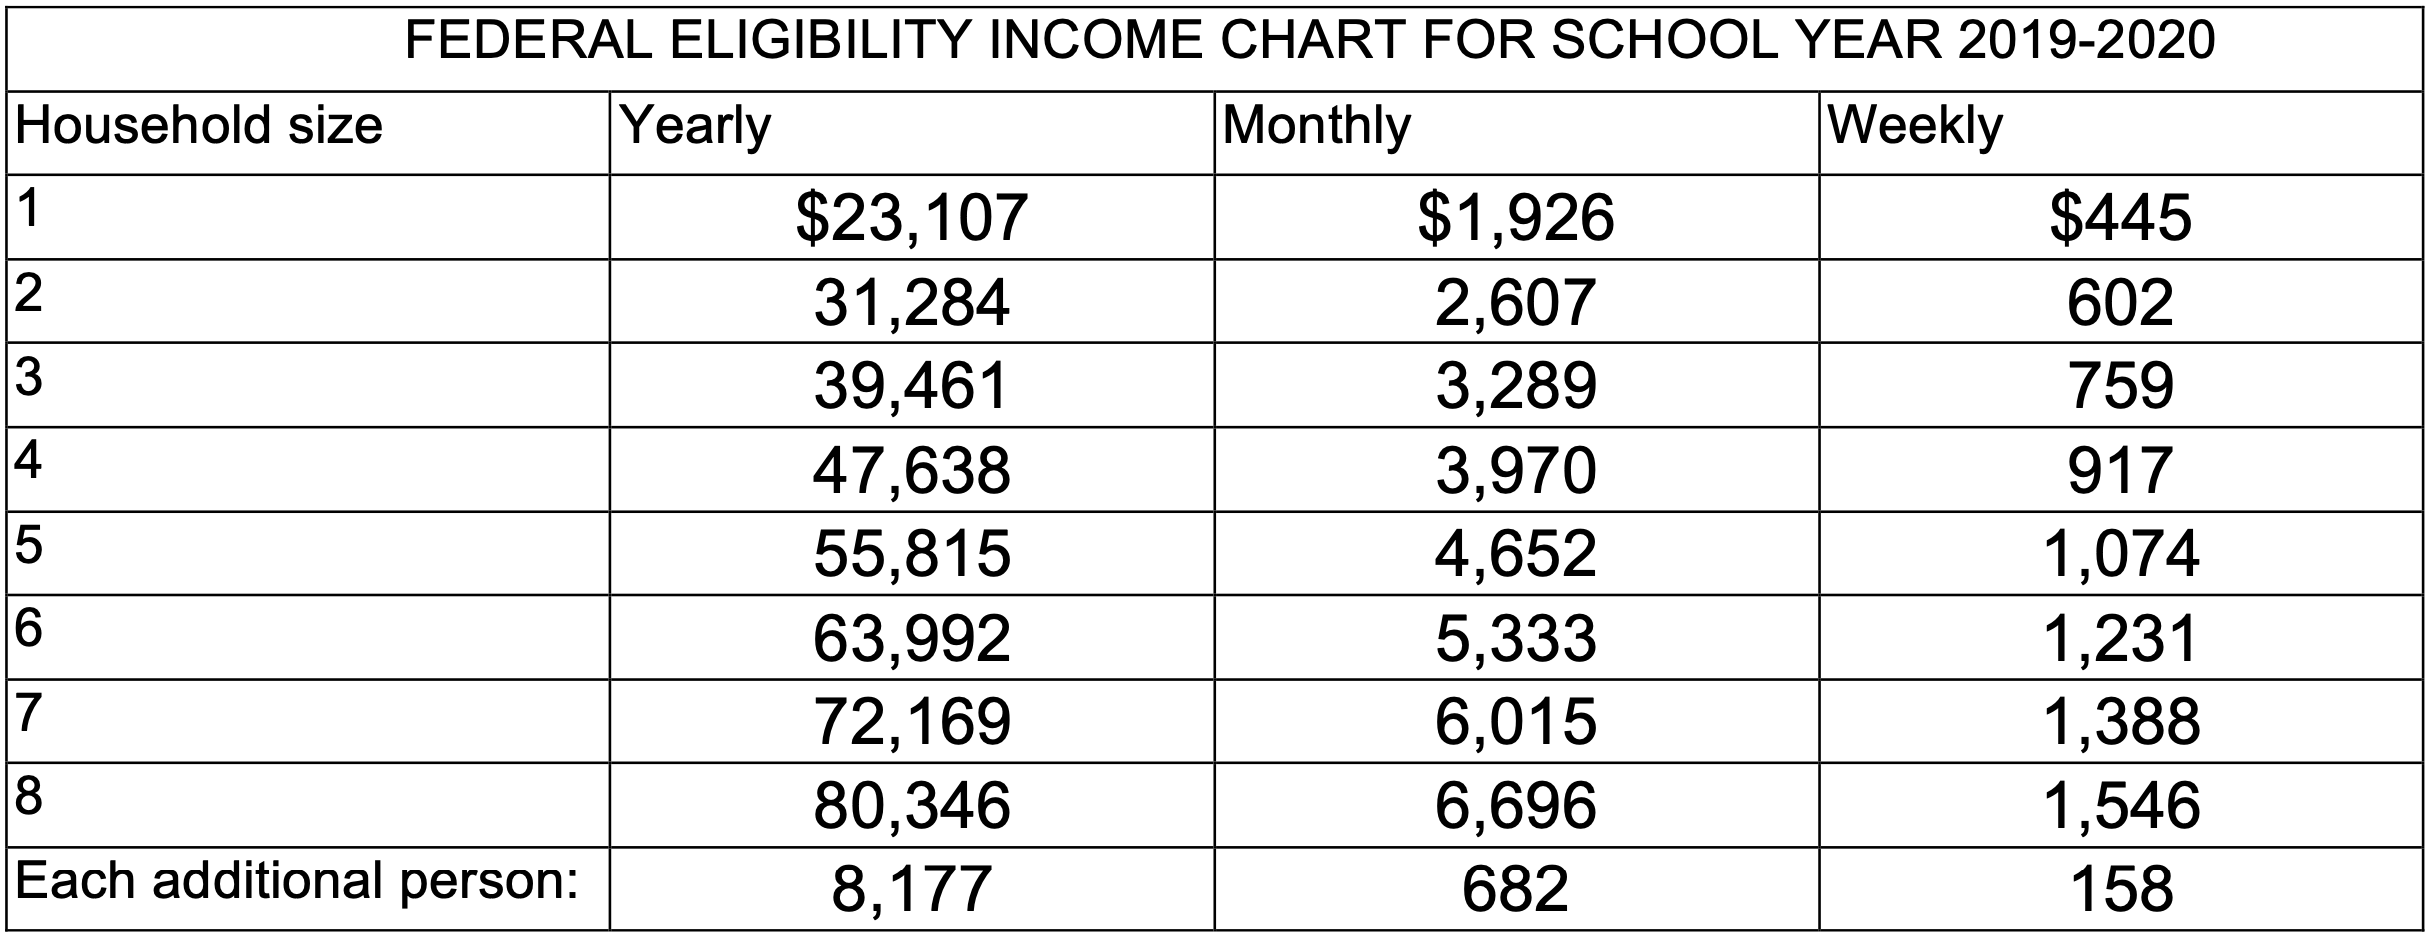 FEDERAL ELIGIBILITY INCOME CHART FOR SCHOOL YEAR 2019-2020